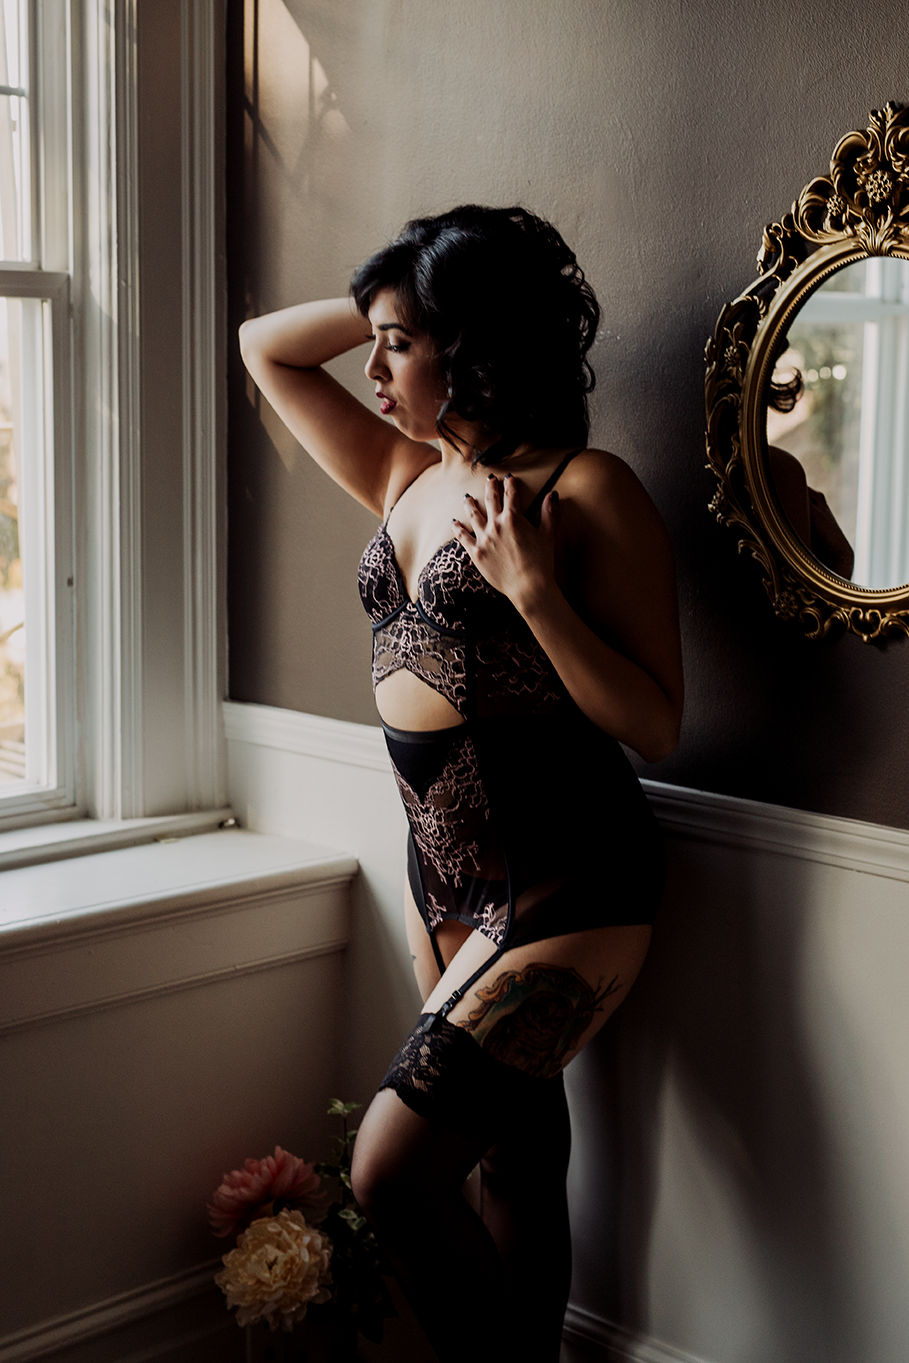 Vancouver-Island-Boudoir-Photography-11.png